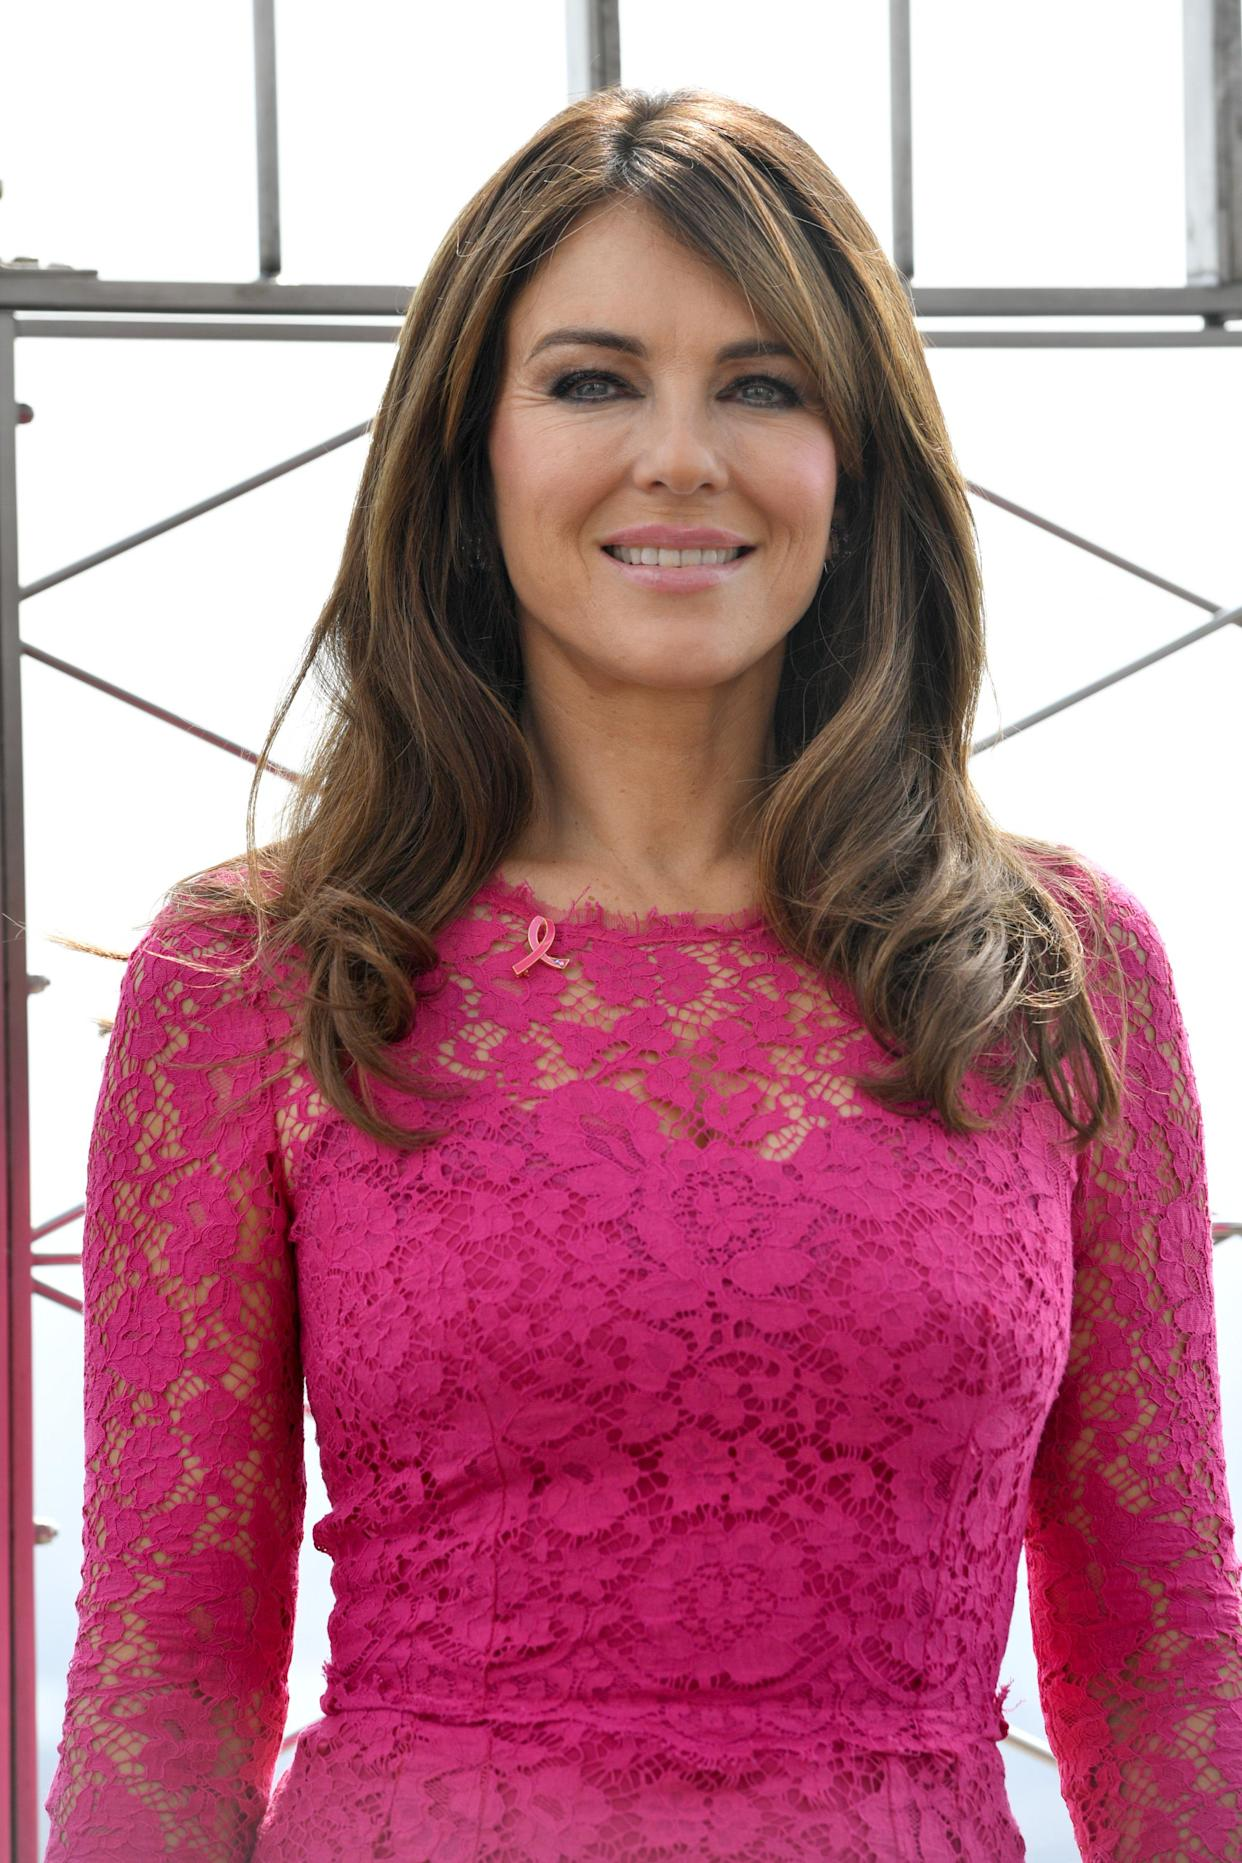 Elizabeth Hurley attends the ceremonial lighting of the Empire State Building in Pink For Breast Cancer Awareness Campaignin New York, NY, October 1, 2019. (Photo by Anthony Behar/Sipa USA)